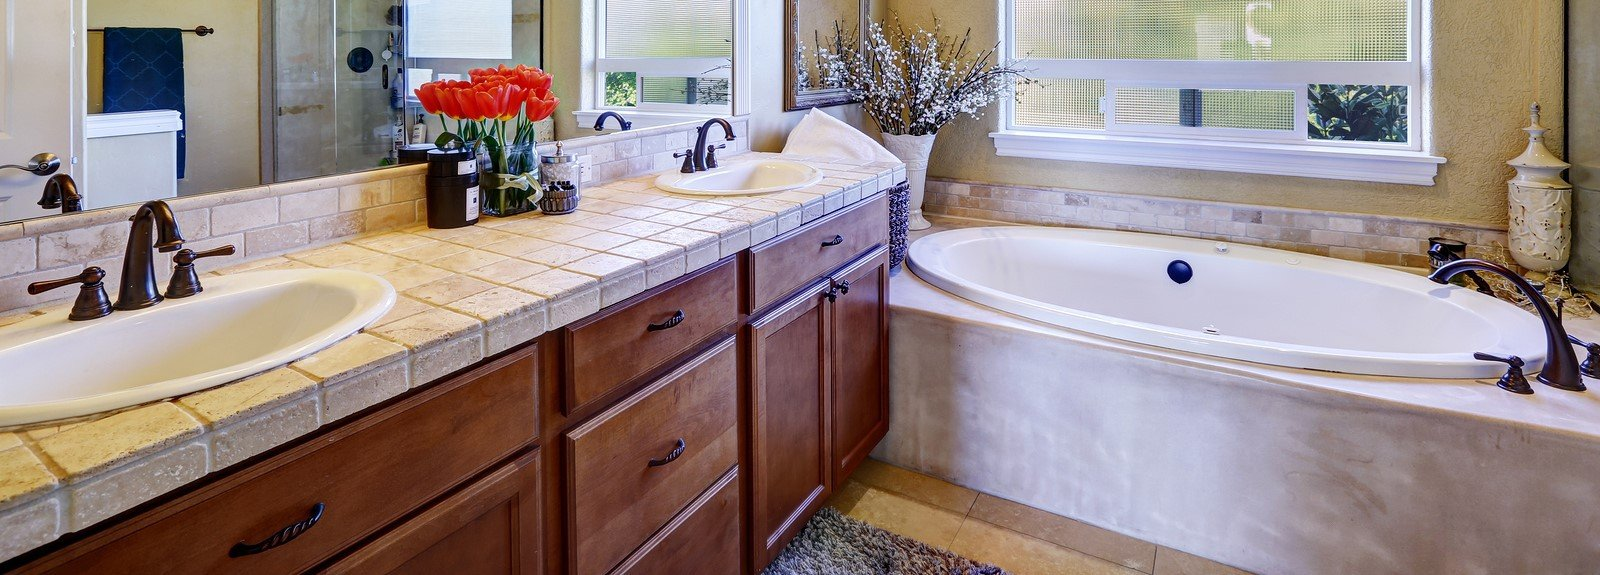 Traditional wood and tile vanity framed by an oval bath.